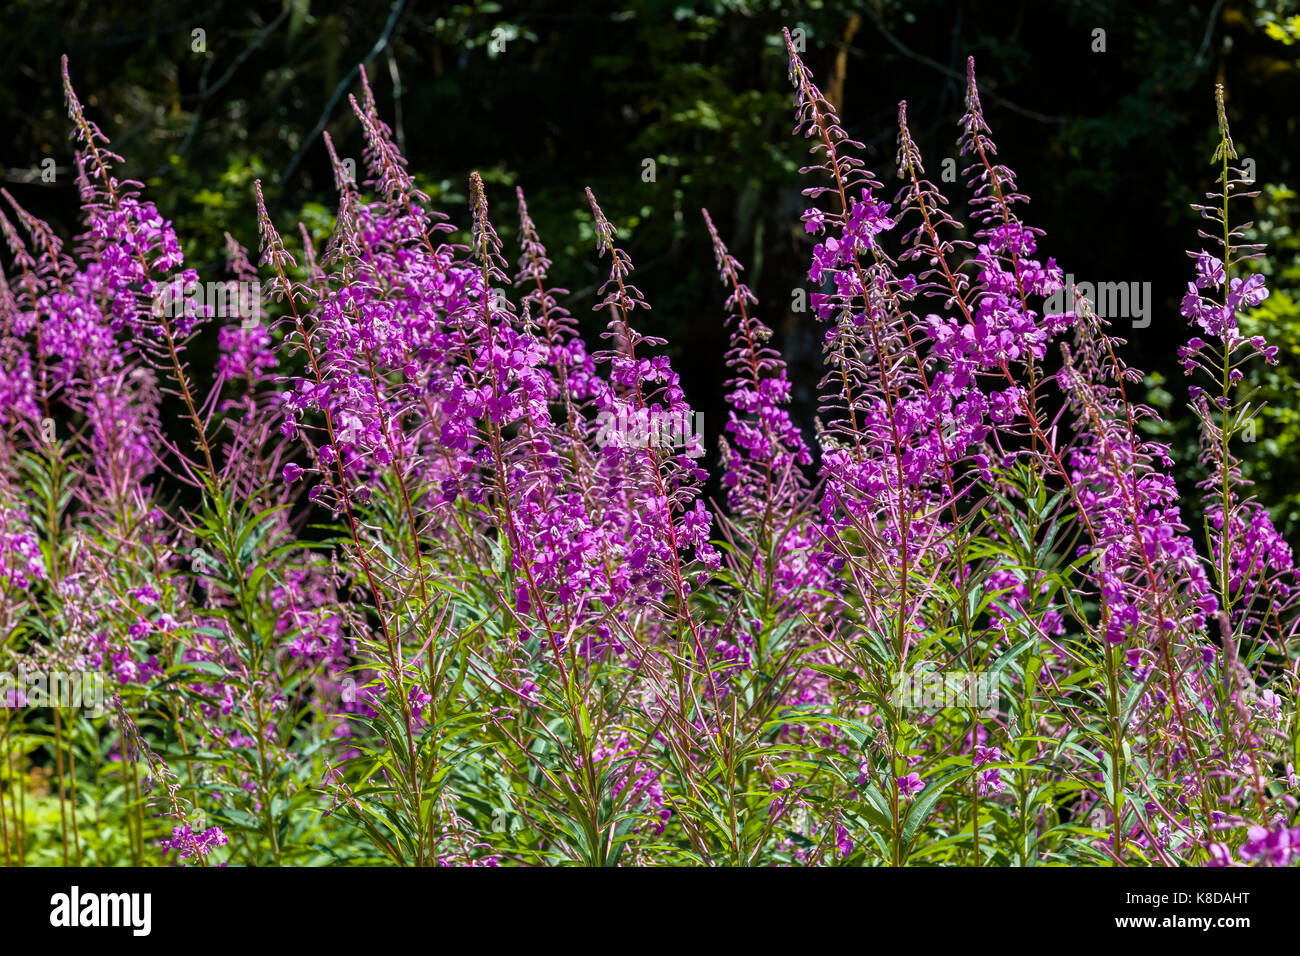 Chamaenerion angustifolium, commonly known in North America as fireweed in Northwest Washington State Stock Photo